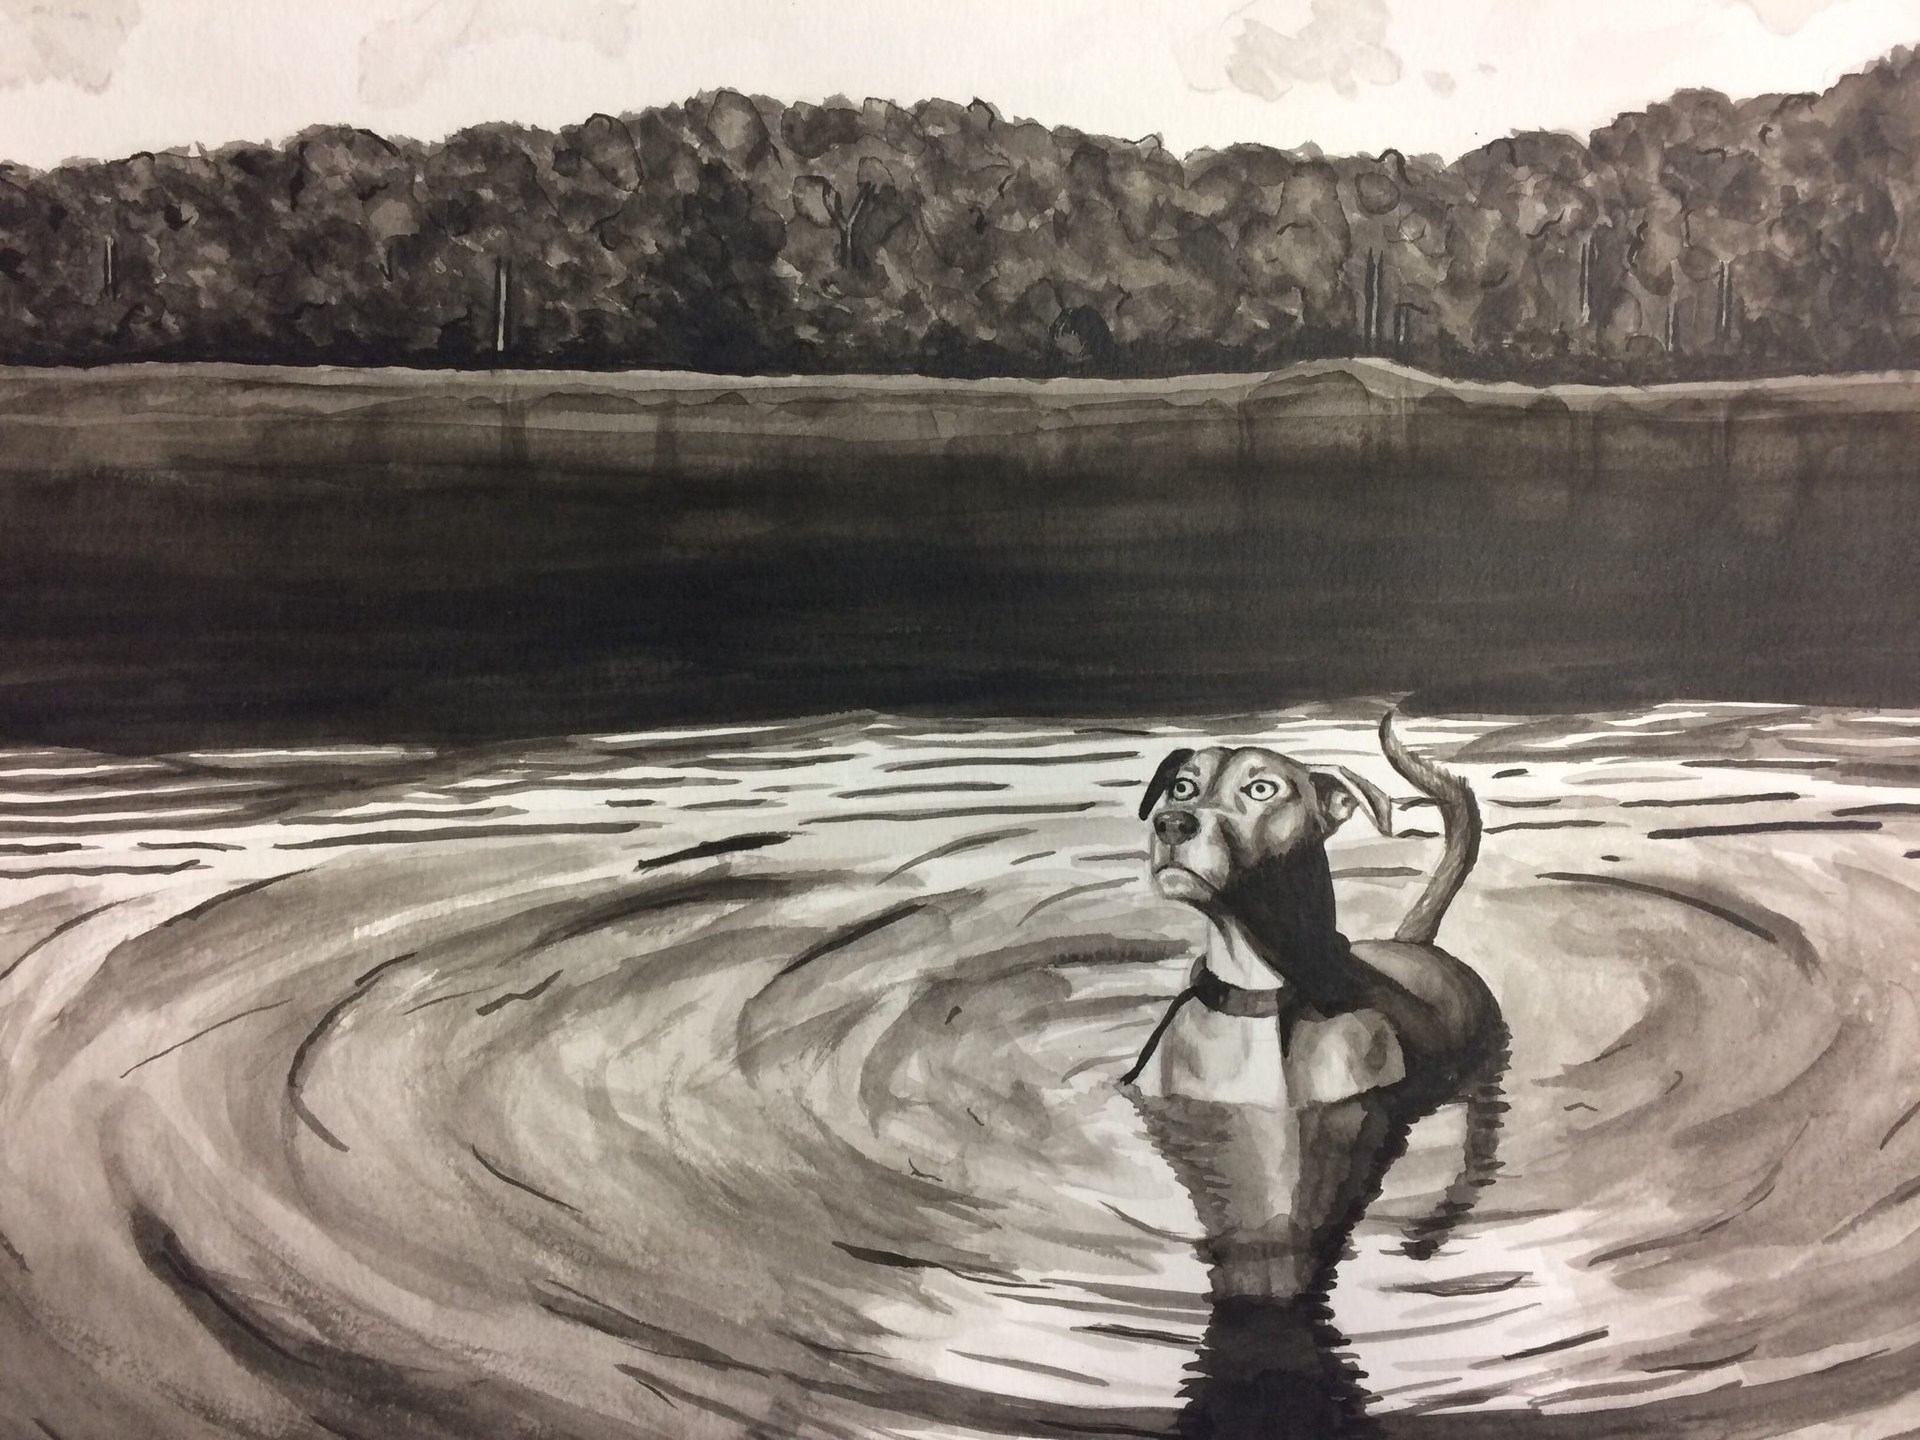 drawing of a dog in water